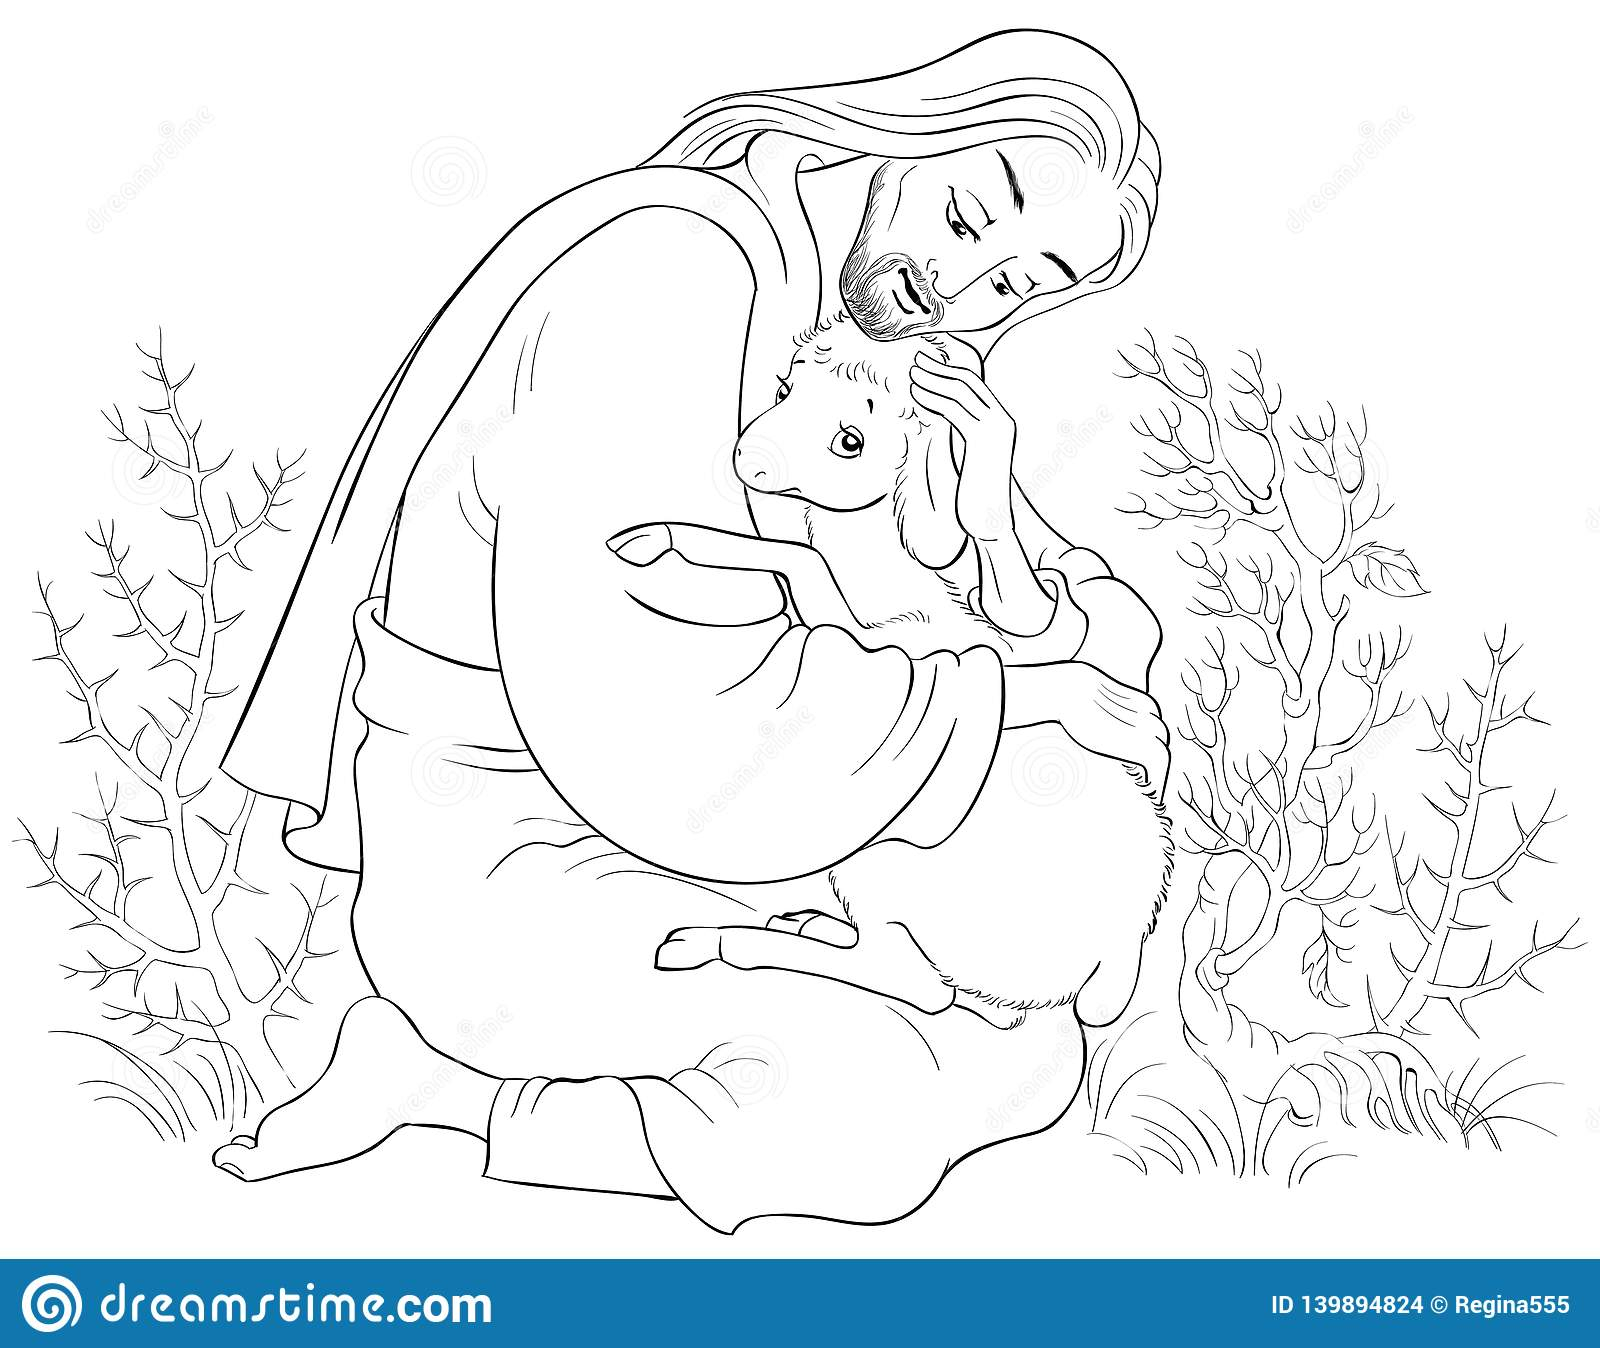 The Good Shepherd Coloring Page Coloring Ideas History Of Jesus Christ The Parable Lost Sheep Good